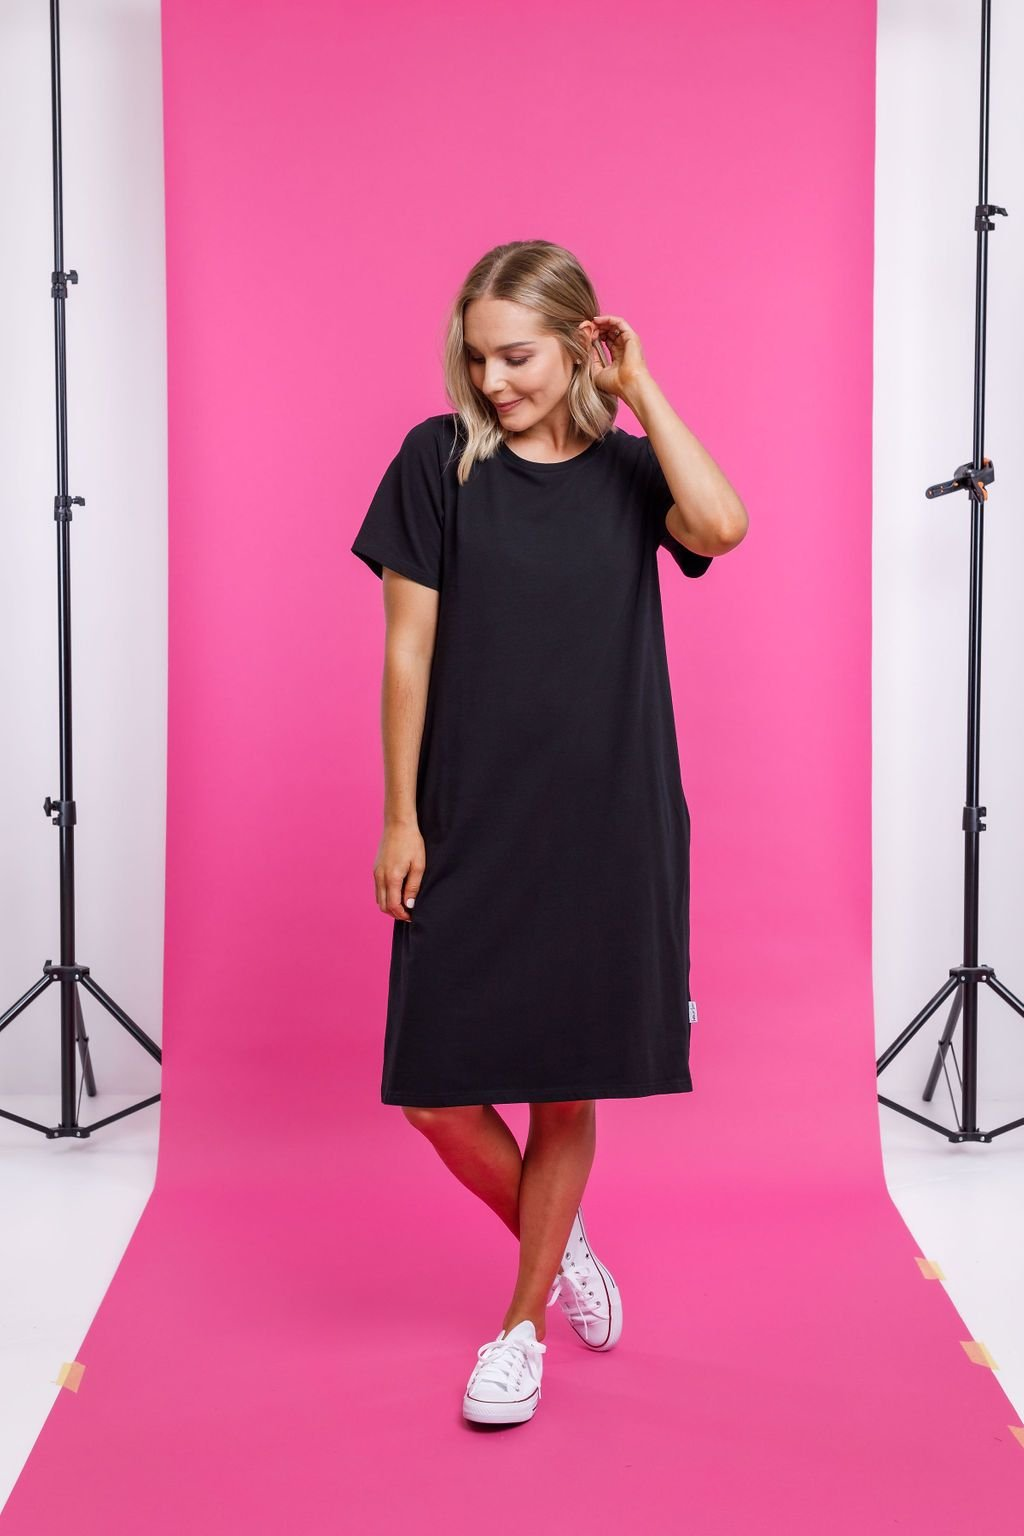 TAYLOR TEE DRESS BLACK - Home Lee Taylor Tee Dress - Ebony Boutique NZ